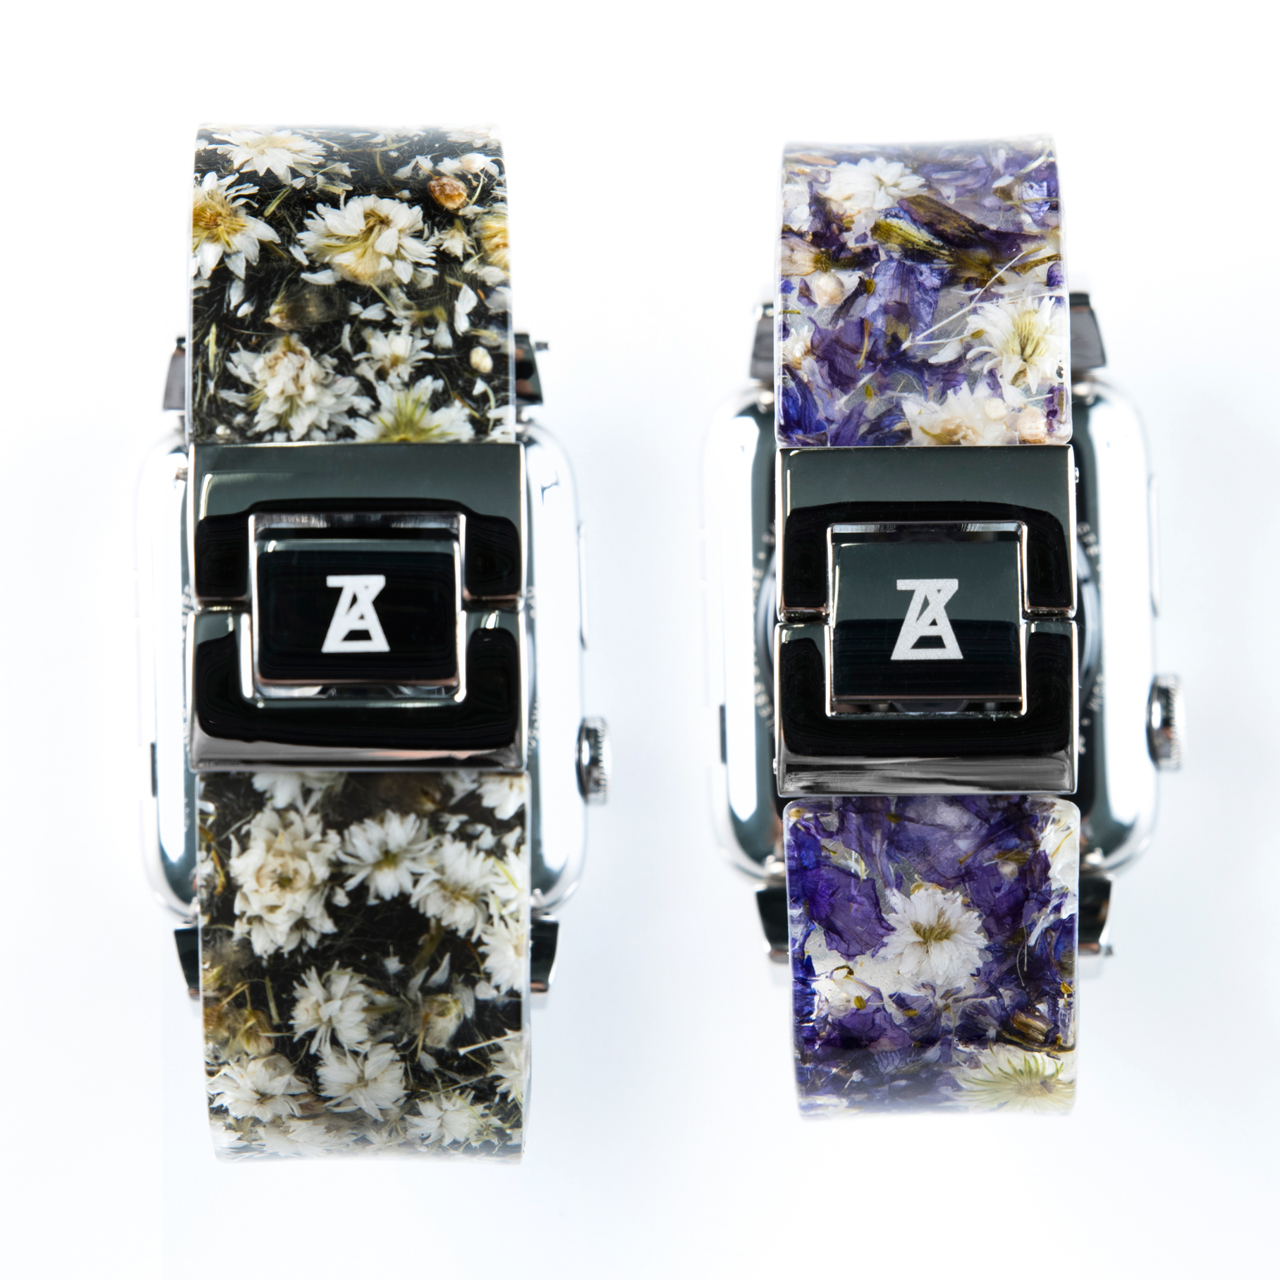 「ANREALAGE FLOWER APPLE WATCH BAND」 を発売